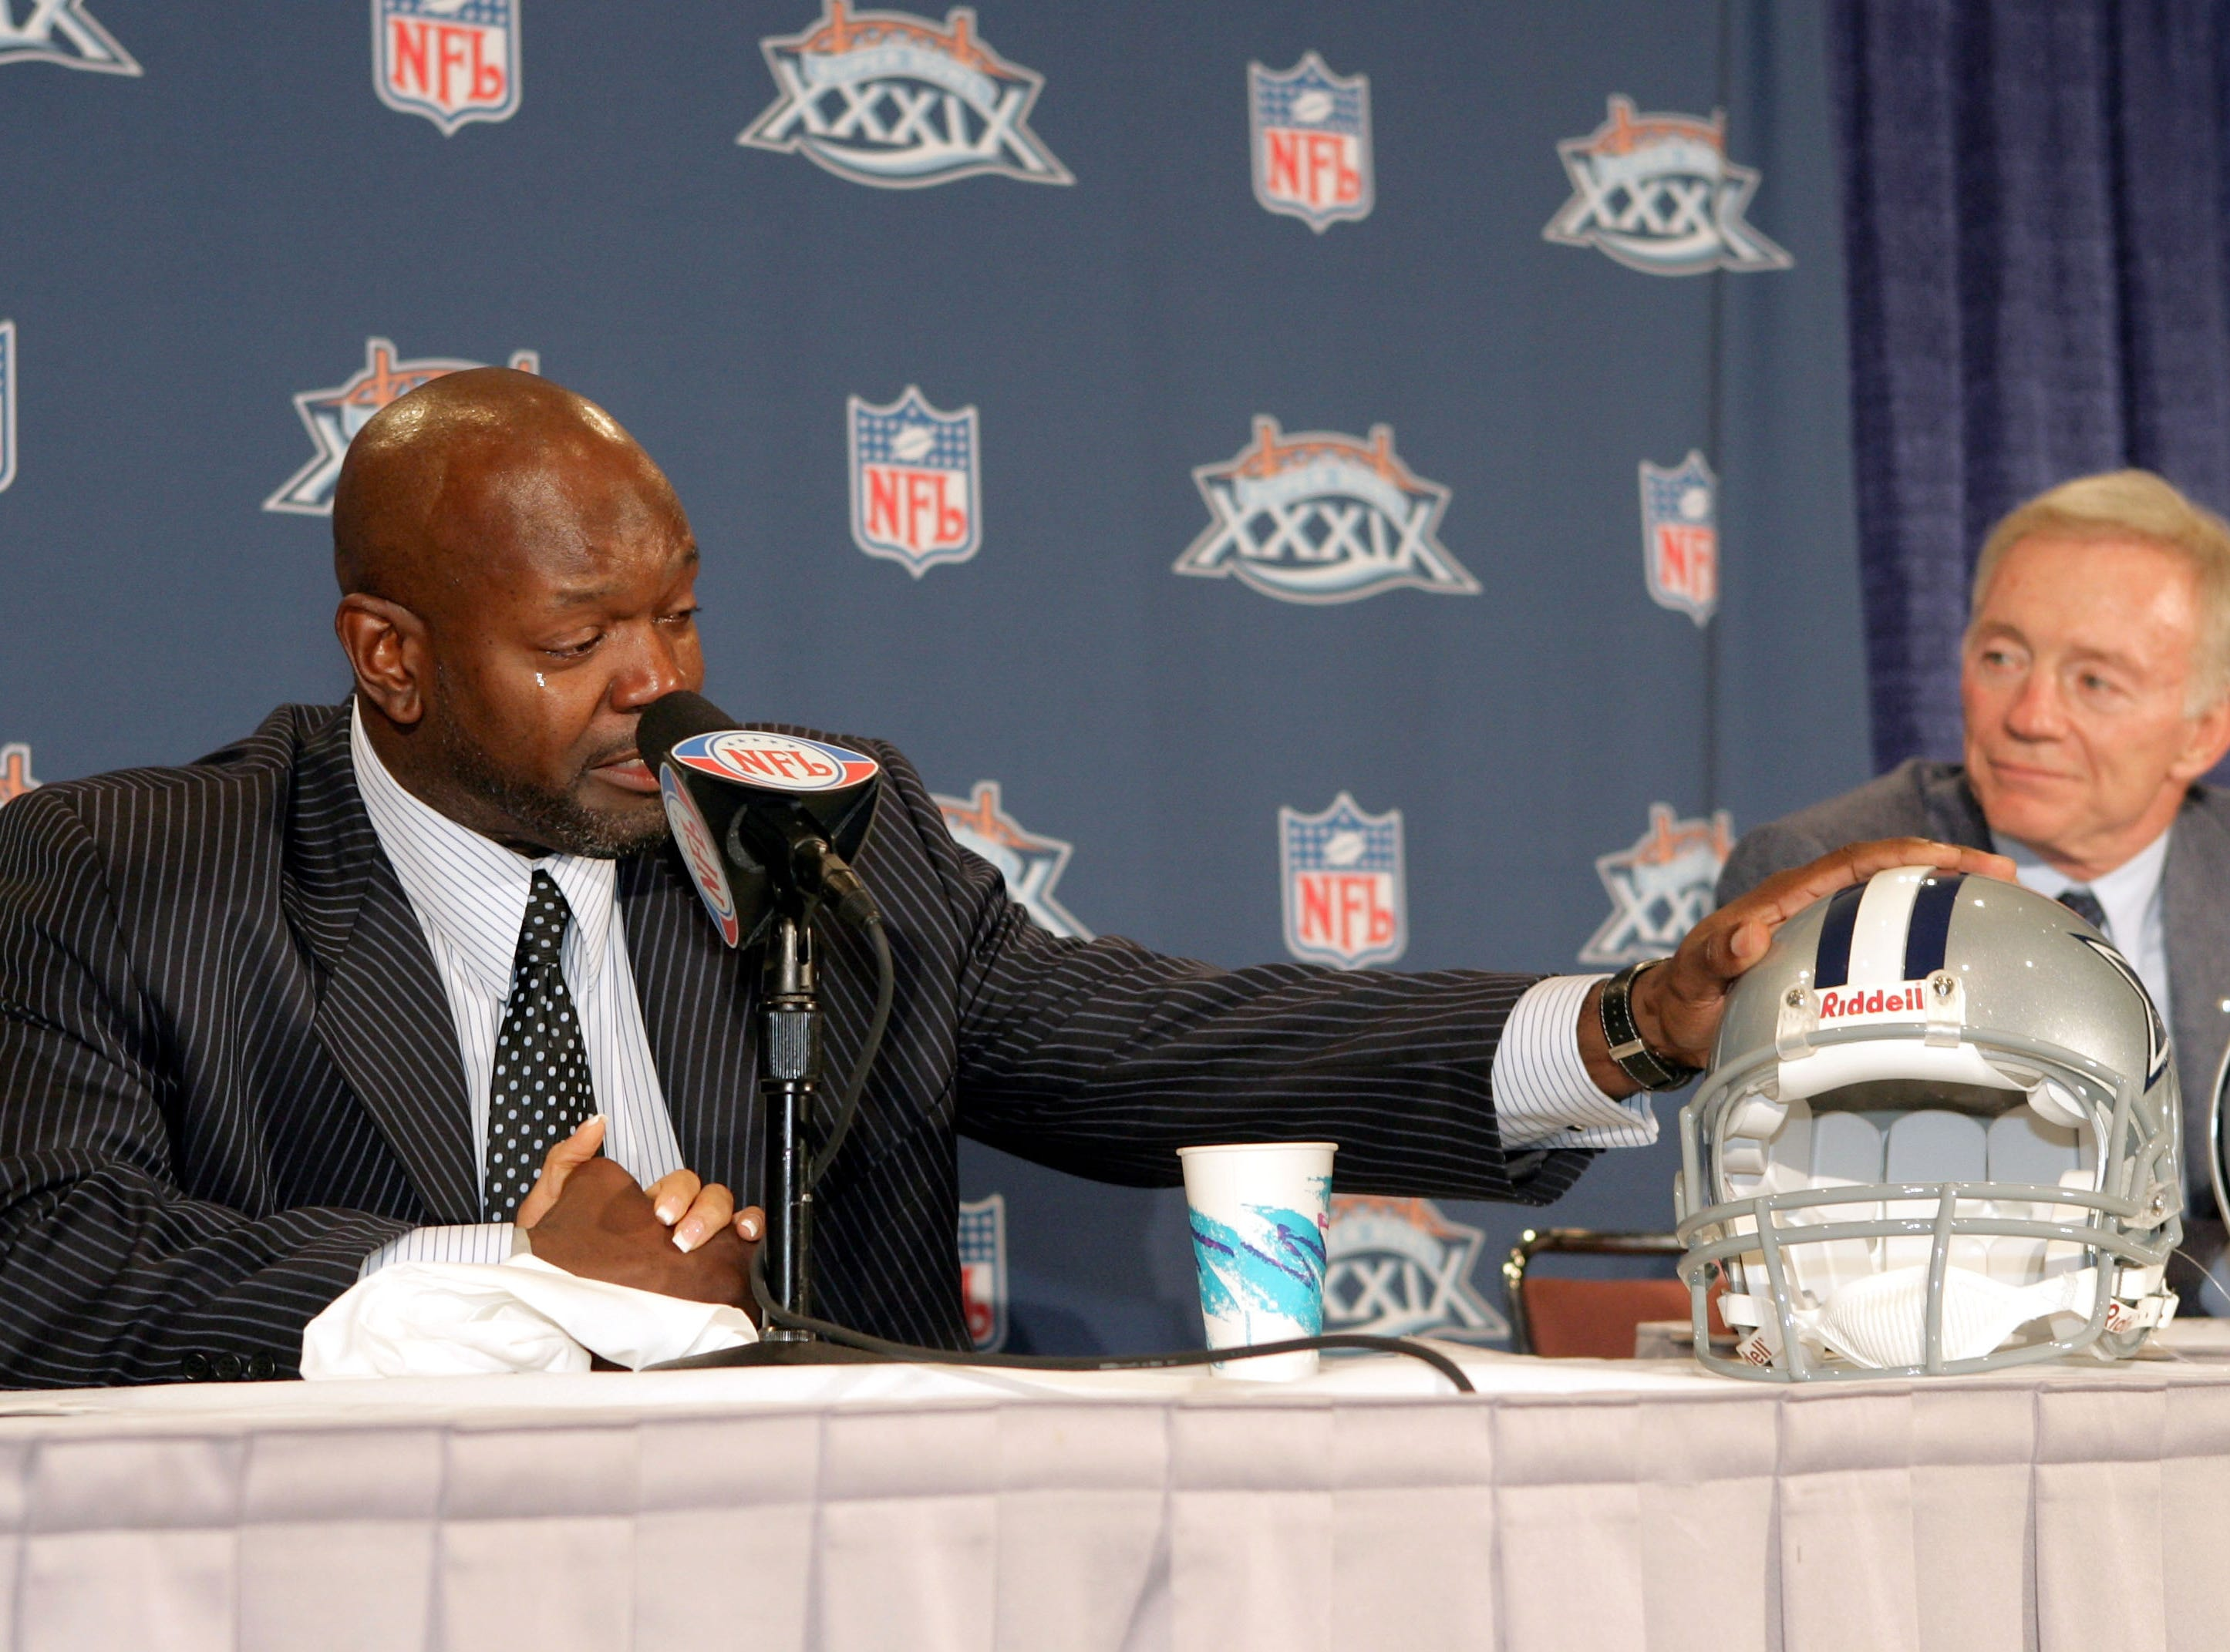 JACKSONVILLE, FL - FEBRUARY 3:  Running back Emmitt Smith becomes emotional at a press conference held to announce his retirement from the NFL after 15 years as Dallas Cowboys owner Jerry Jones looks on at the Prime F. Osborn III Convention Center on February 3, 2005 in Jacksonville, Florida.  (Photo by Jeff Gross/Getty Images)